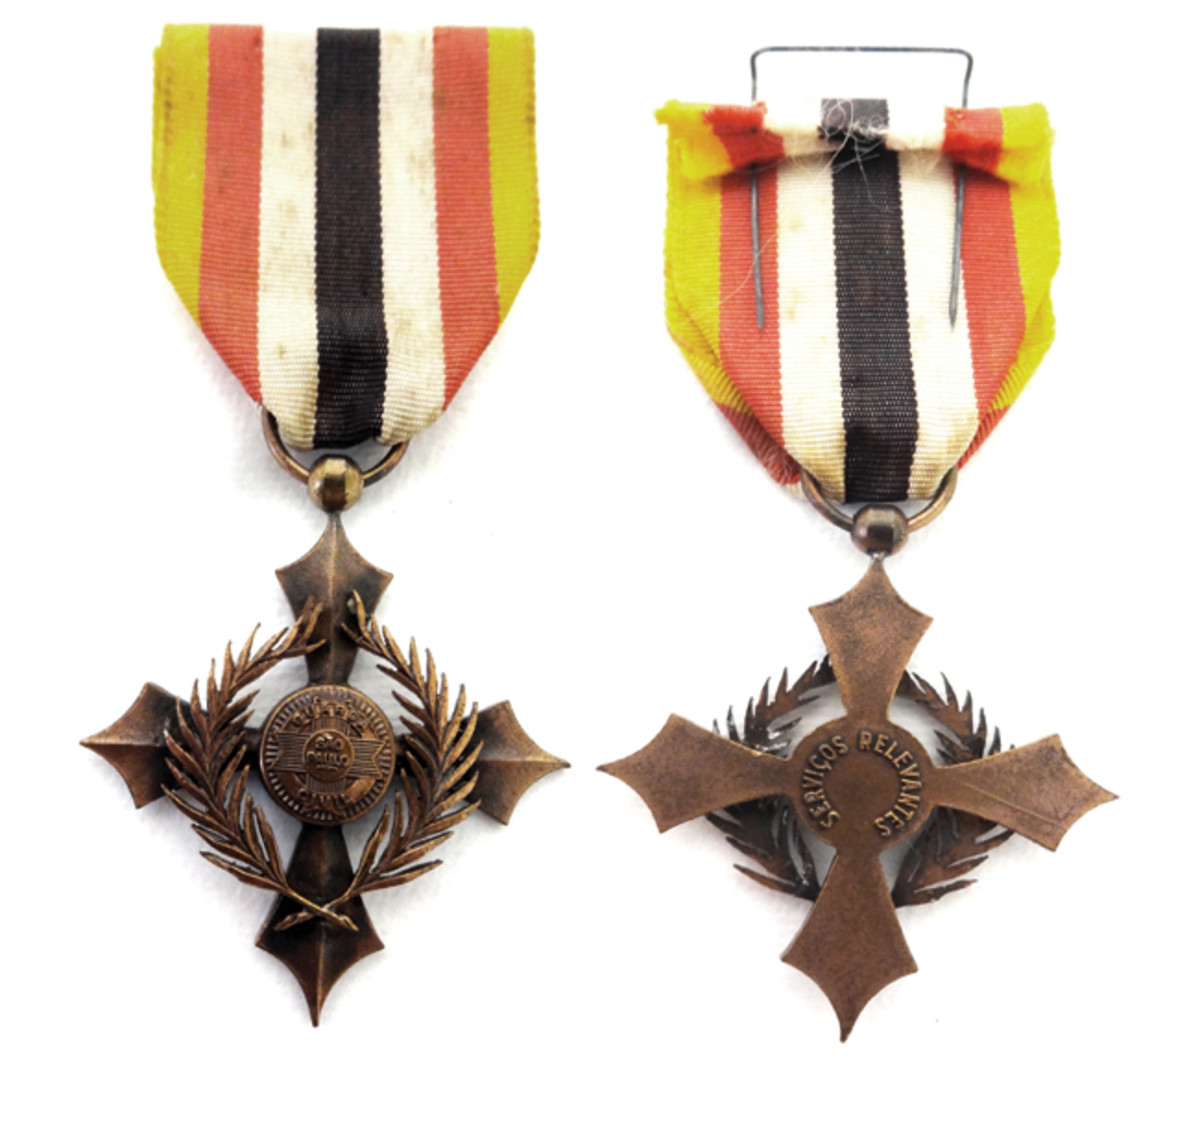 The Police Distinguished Service Cross consists of a gilt bronze speared cross with two laurel palms crossed over its arms. Its center front has a disc with the São Paulo Civil Guard's symbol. It is the rarest of Brazilian-produced WWII medals.